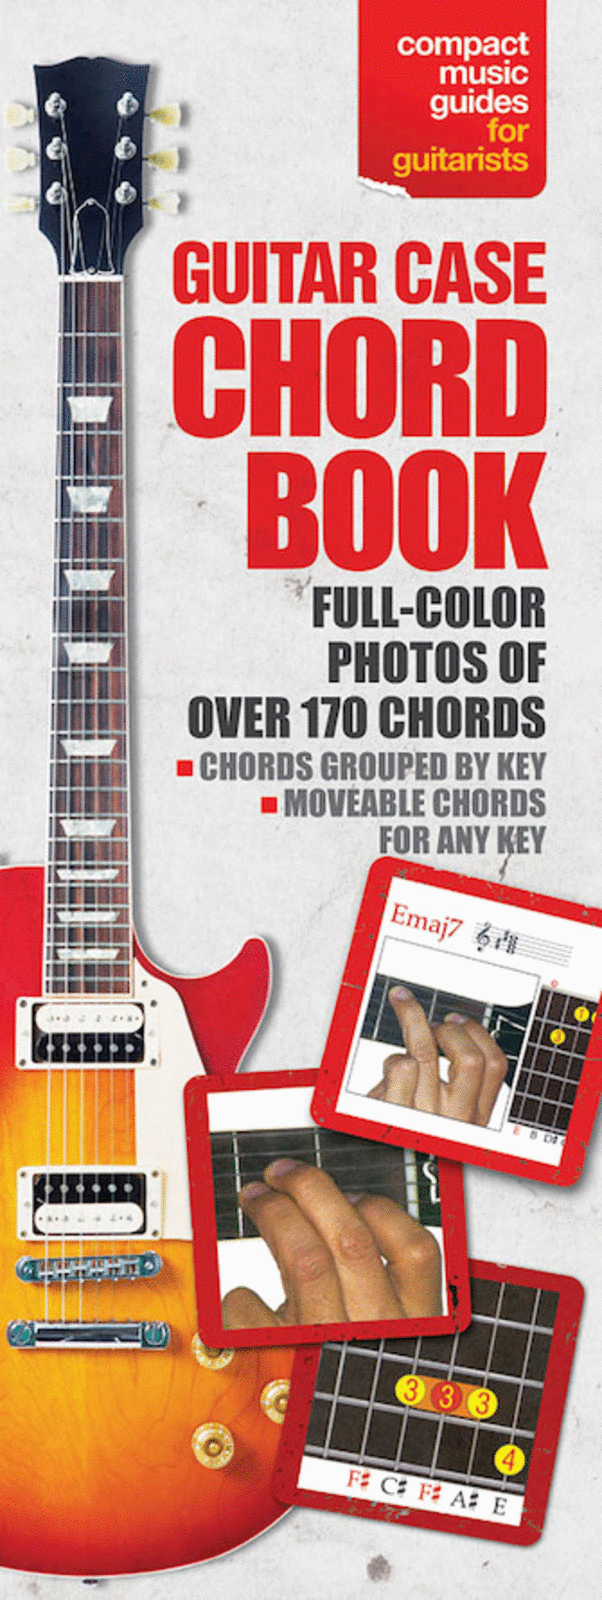 The Guitar Case Chord Book in Full Color